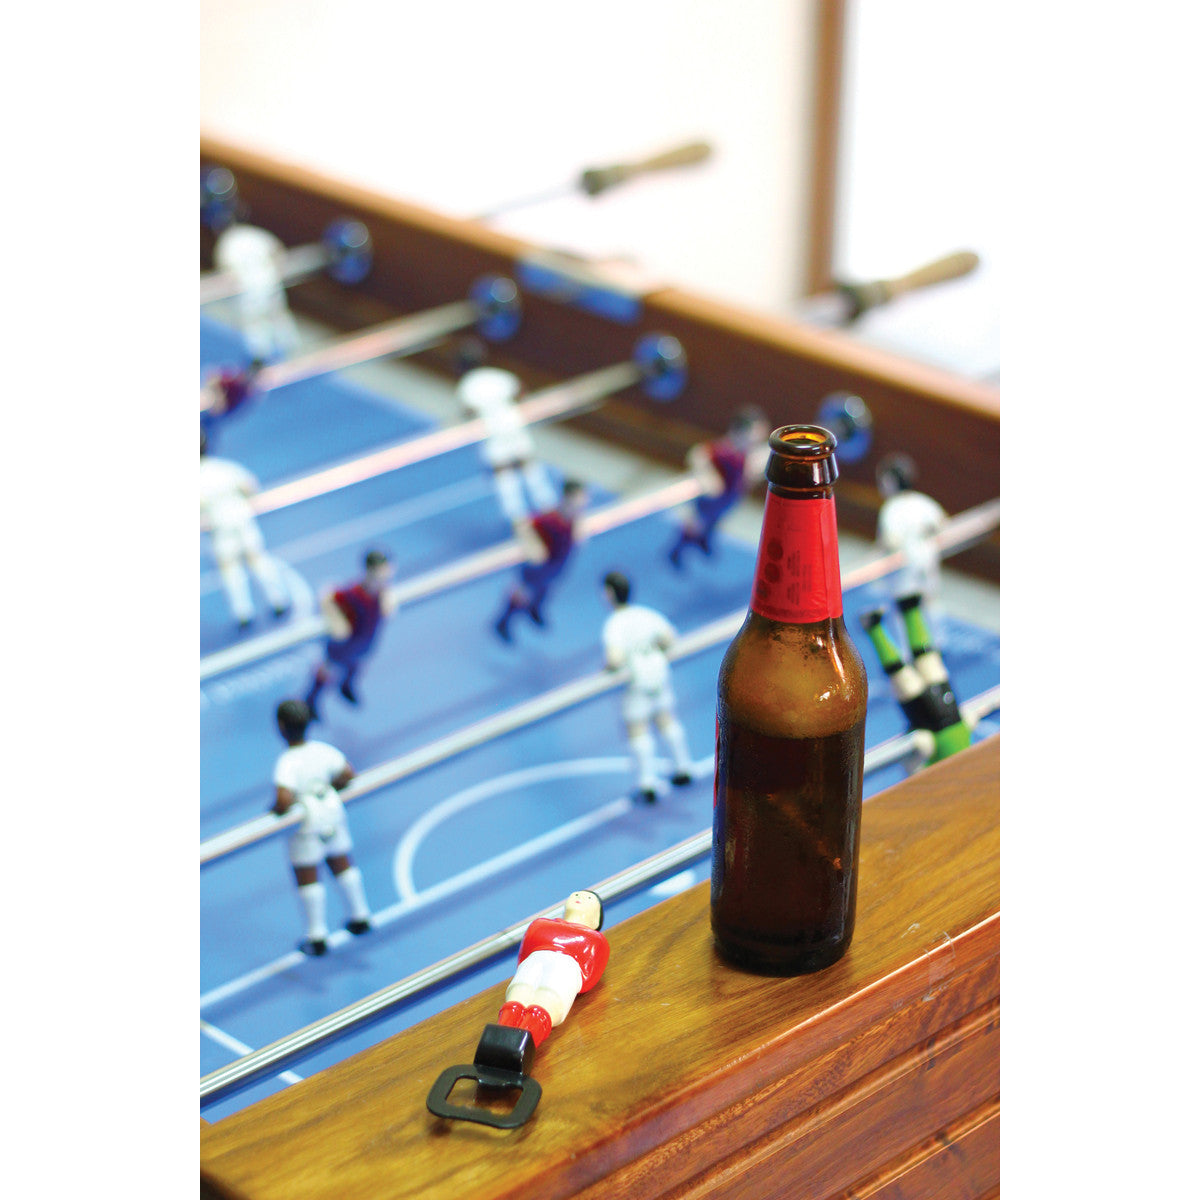 DOIY Foosball Bottle Opener